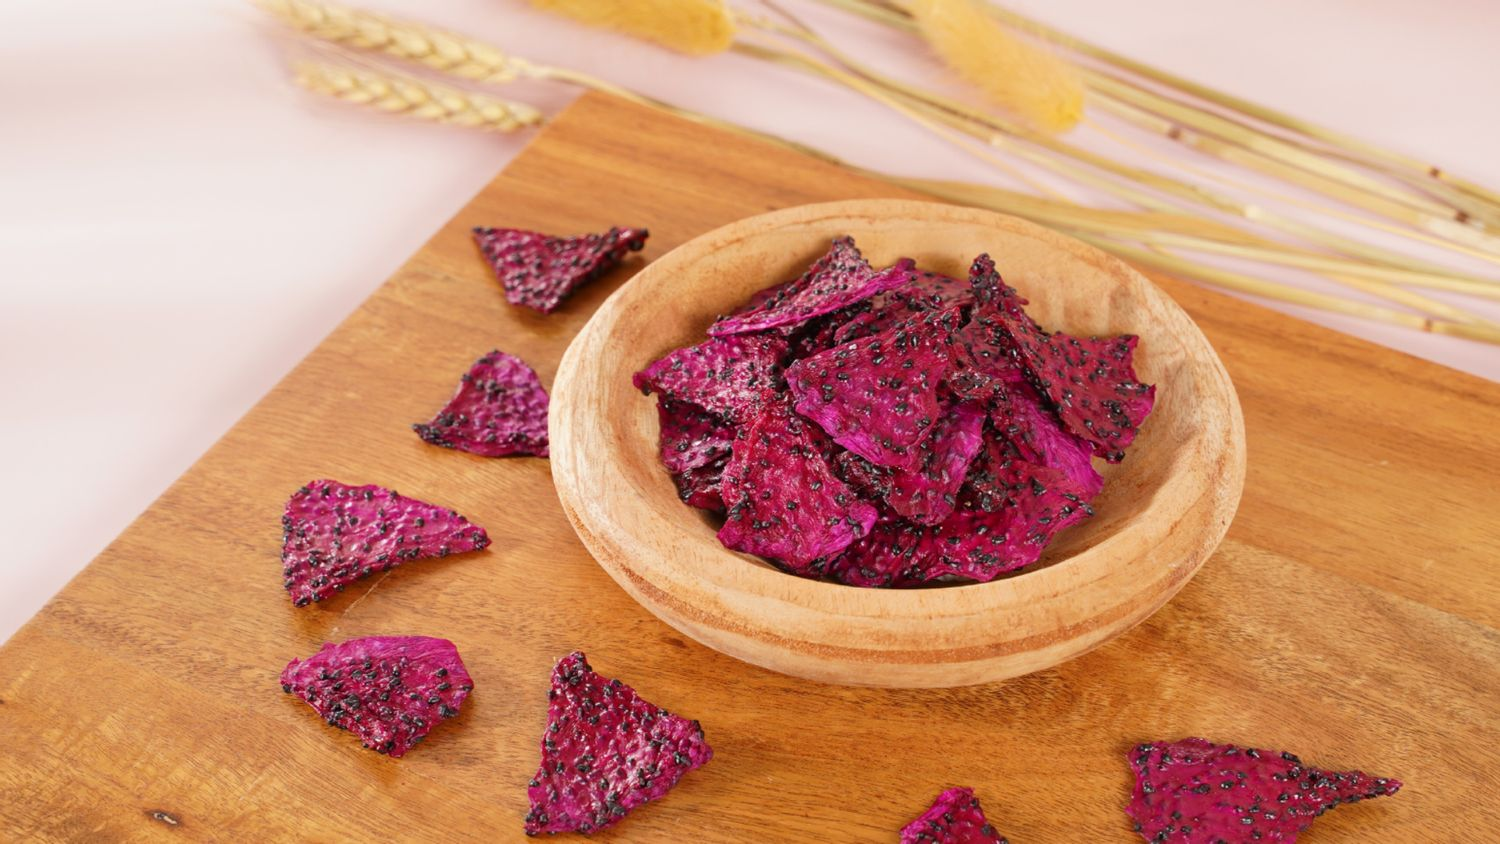 Fruit First: Dried Fruit 100% Made in Malaysia | No Sugar, No Preservative